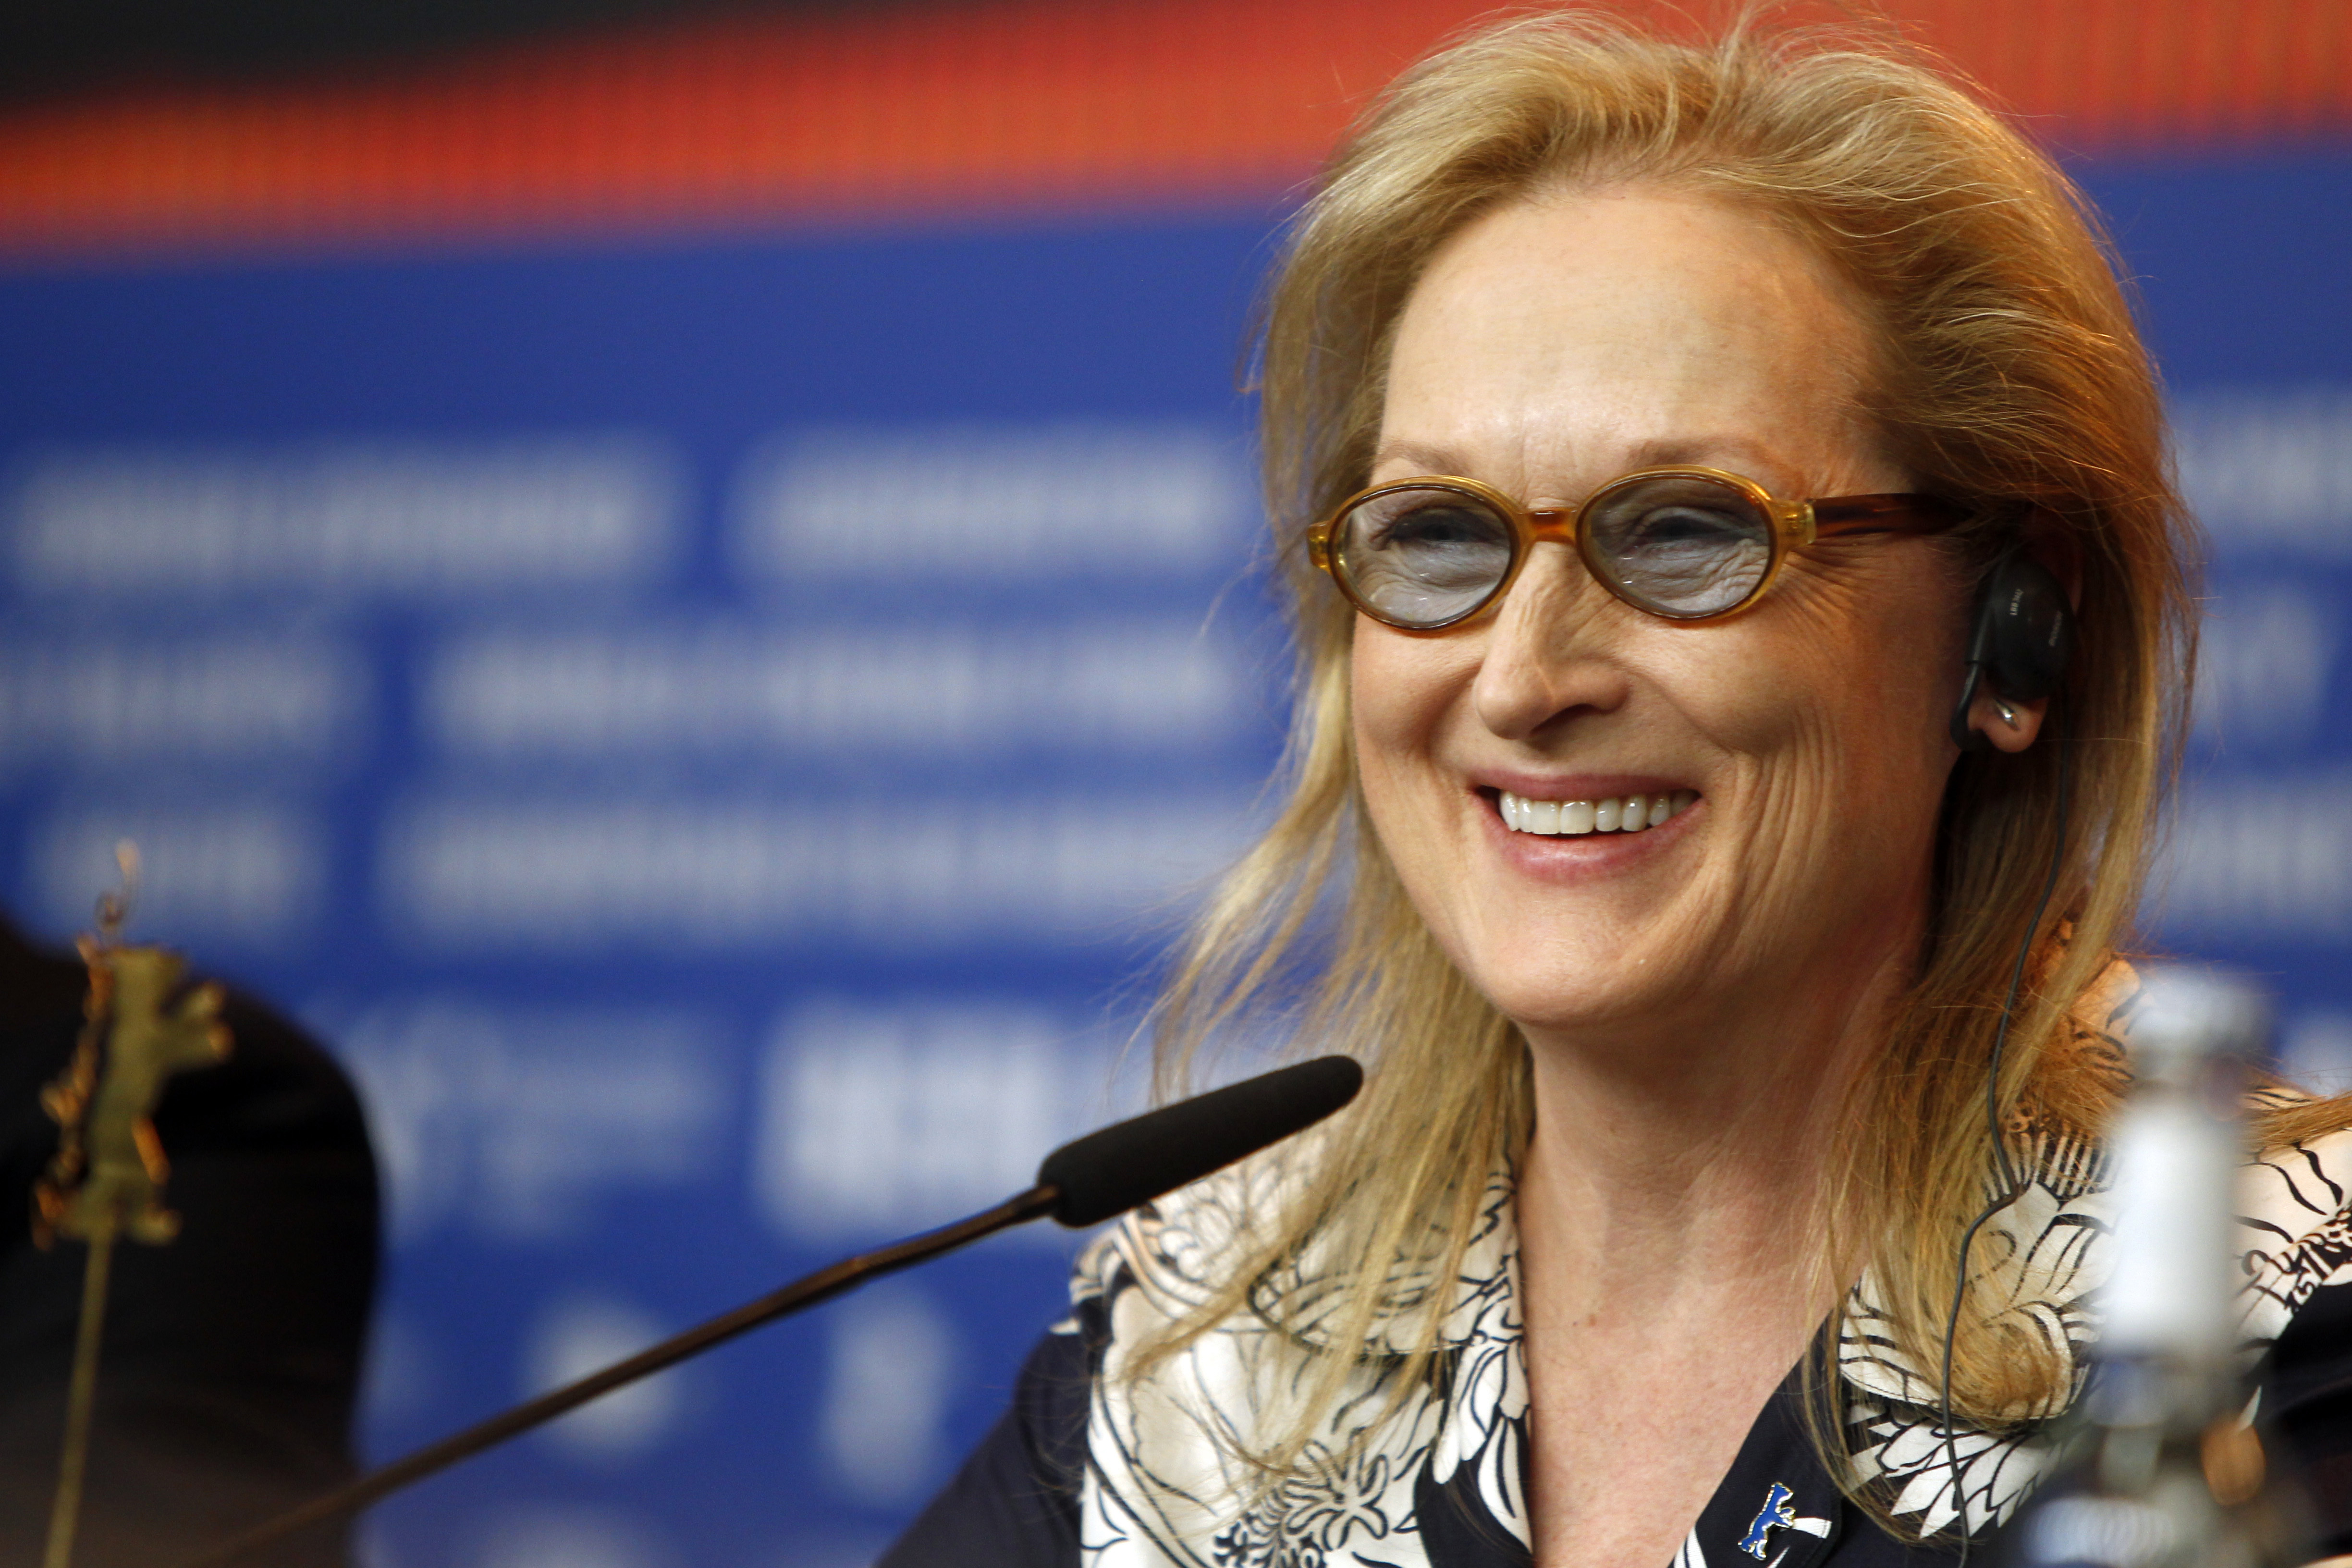 Meryl Streep is confused about Snapchat